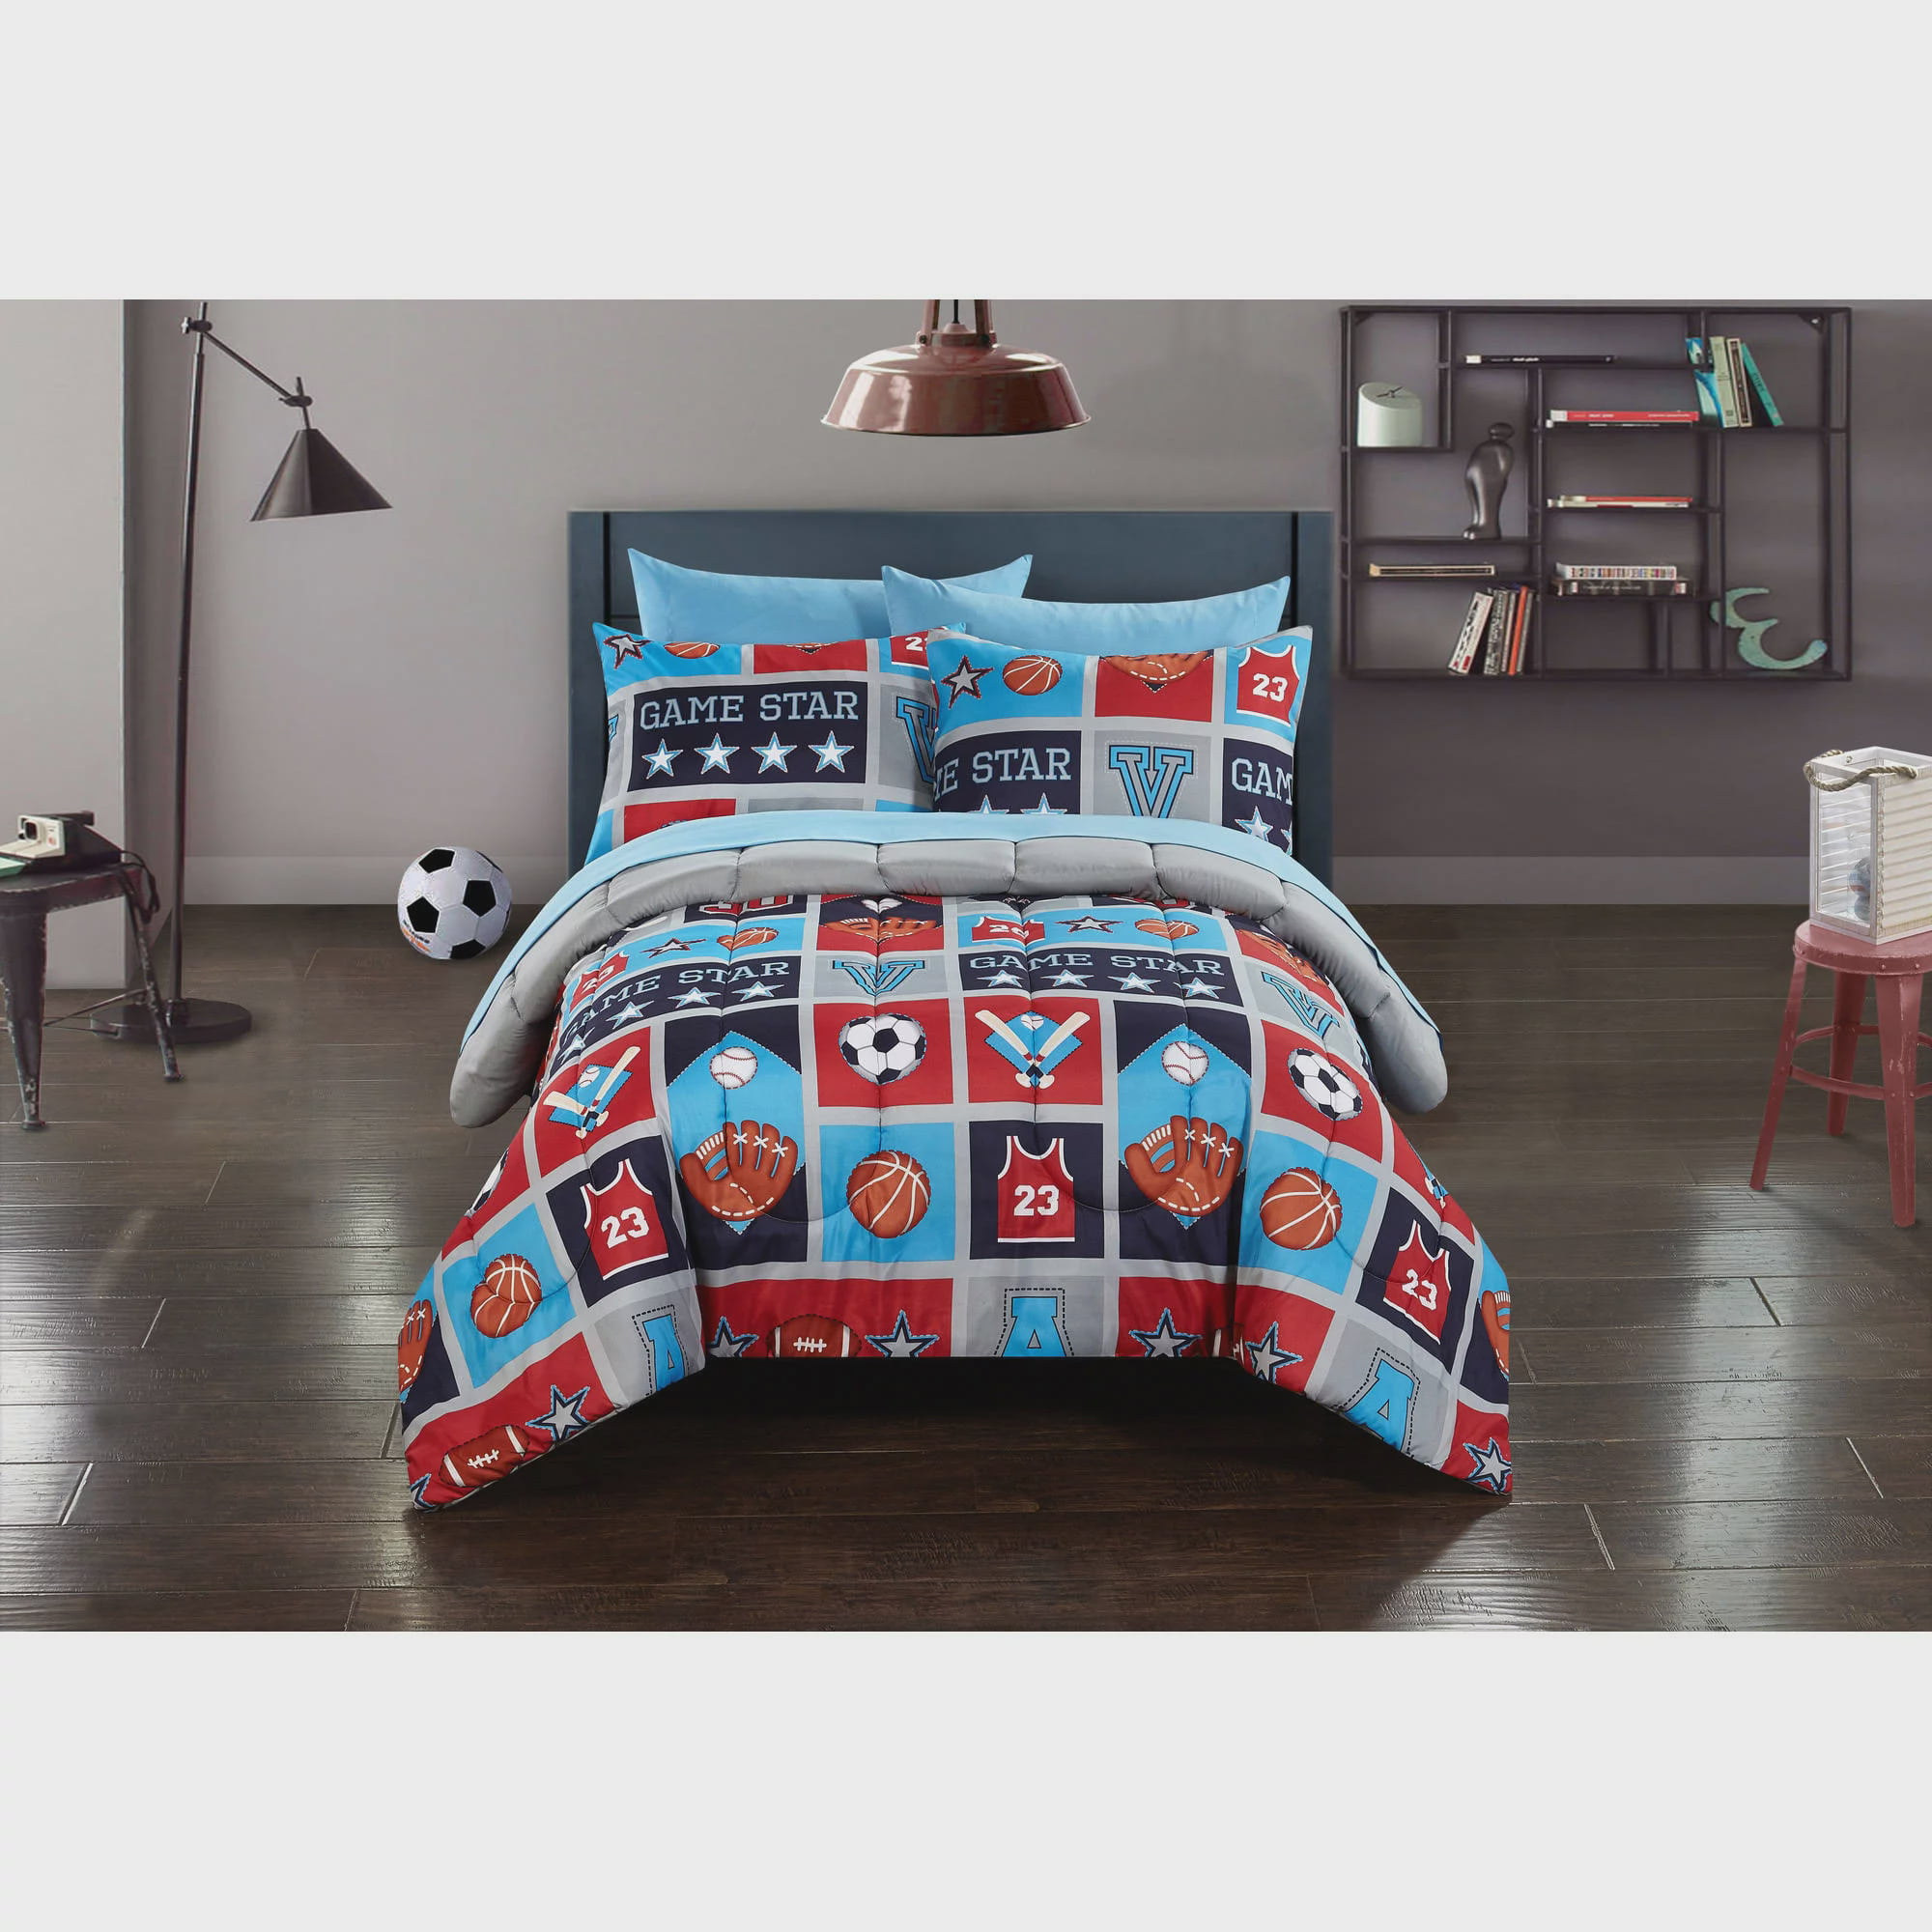 set accessories art comforter themed poster the decorations wall bedroom sports australia designs homemade bedding ideas room football stickers soccer